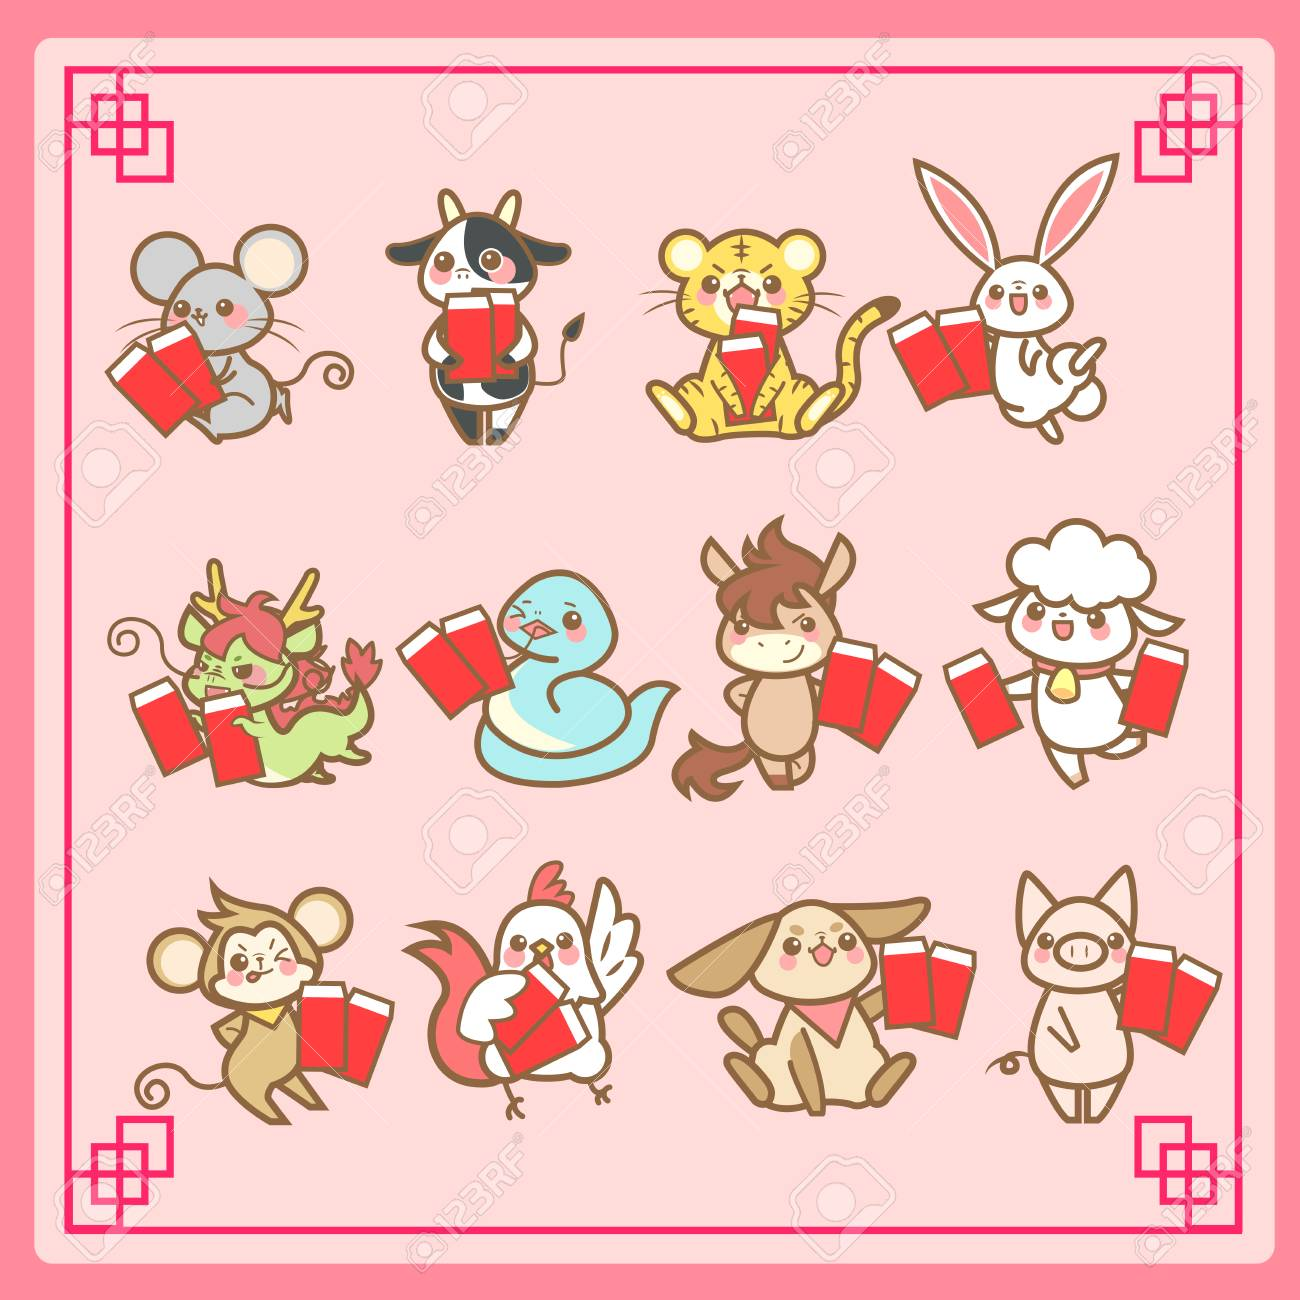 610d04f32 cute cartoon chinese zodiac and happy chinese new year Stock Vector -  69362351